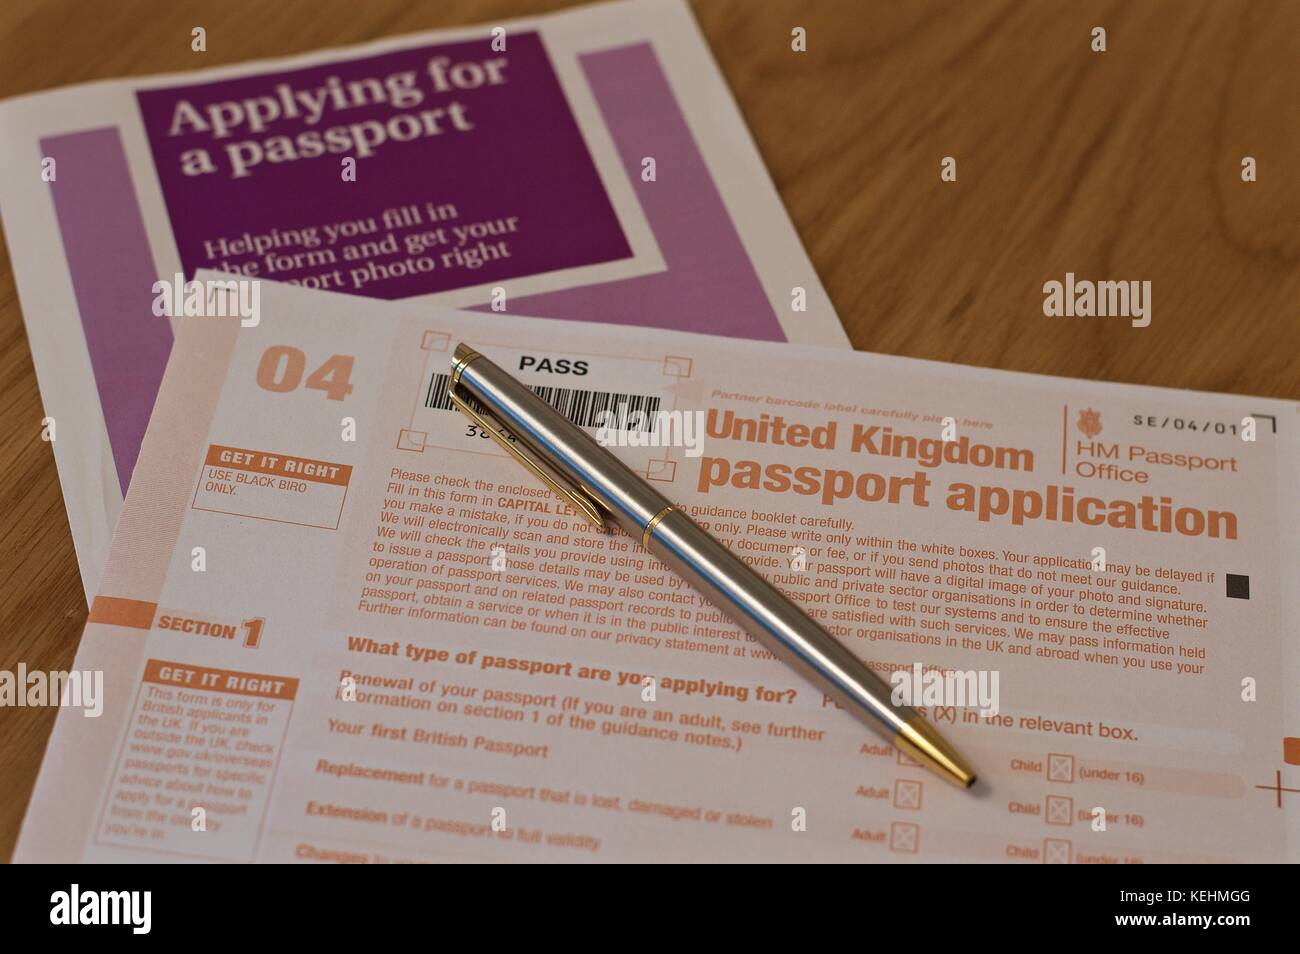 United kingdom uk passport application stock photos united uk passport application form with instructions and pen ready to fill out stock image falaconquin